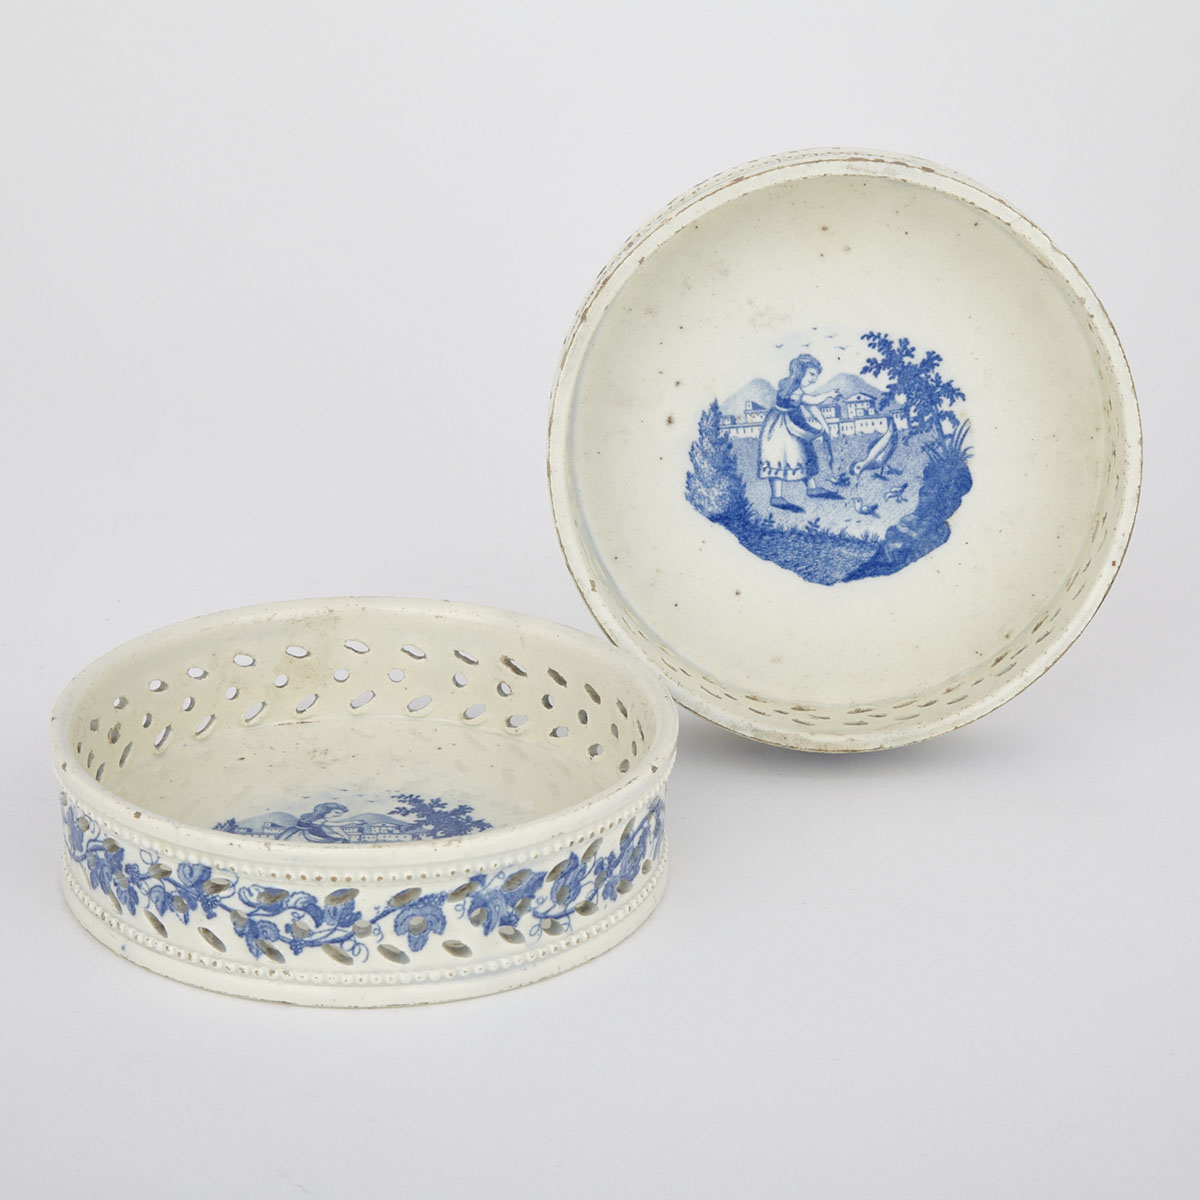 Pair of English Pearlware Pierced Wine Coasters, c.1800